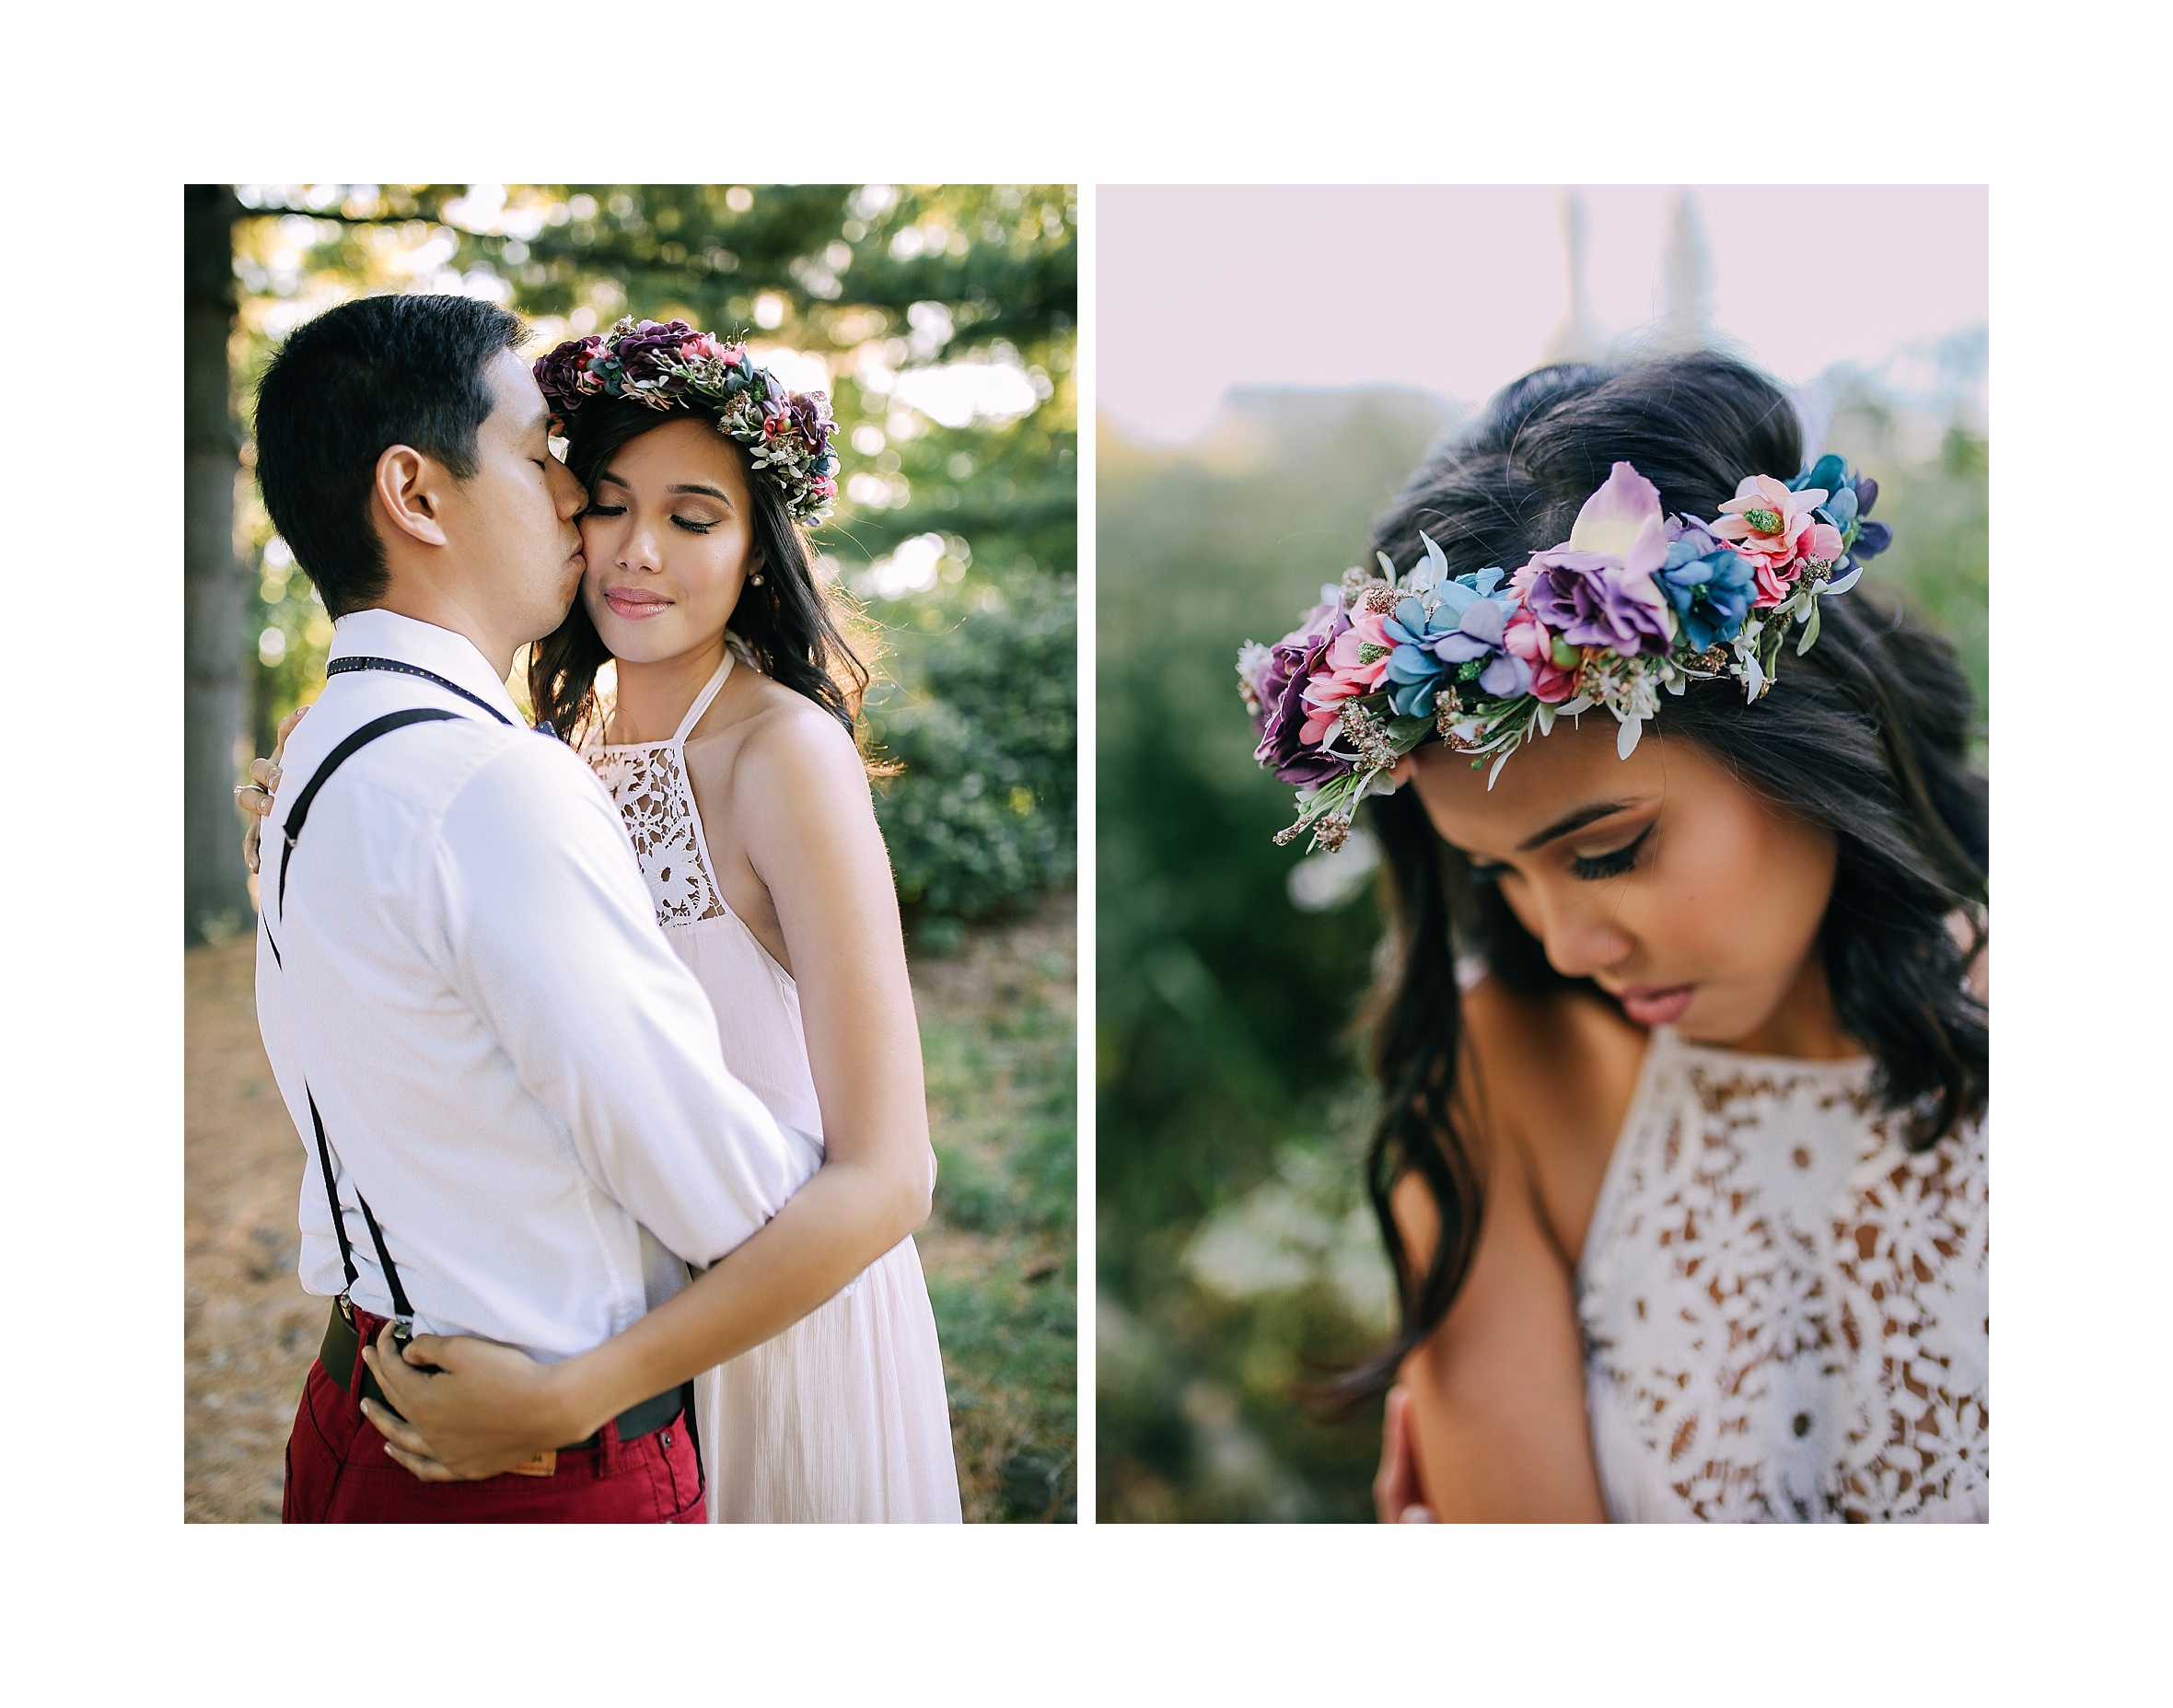 New York City NYC Central Park Engagement Session Bohemian Boho Floral Crown Fairy Photographer_0002